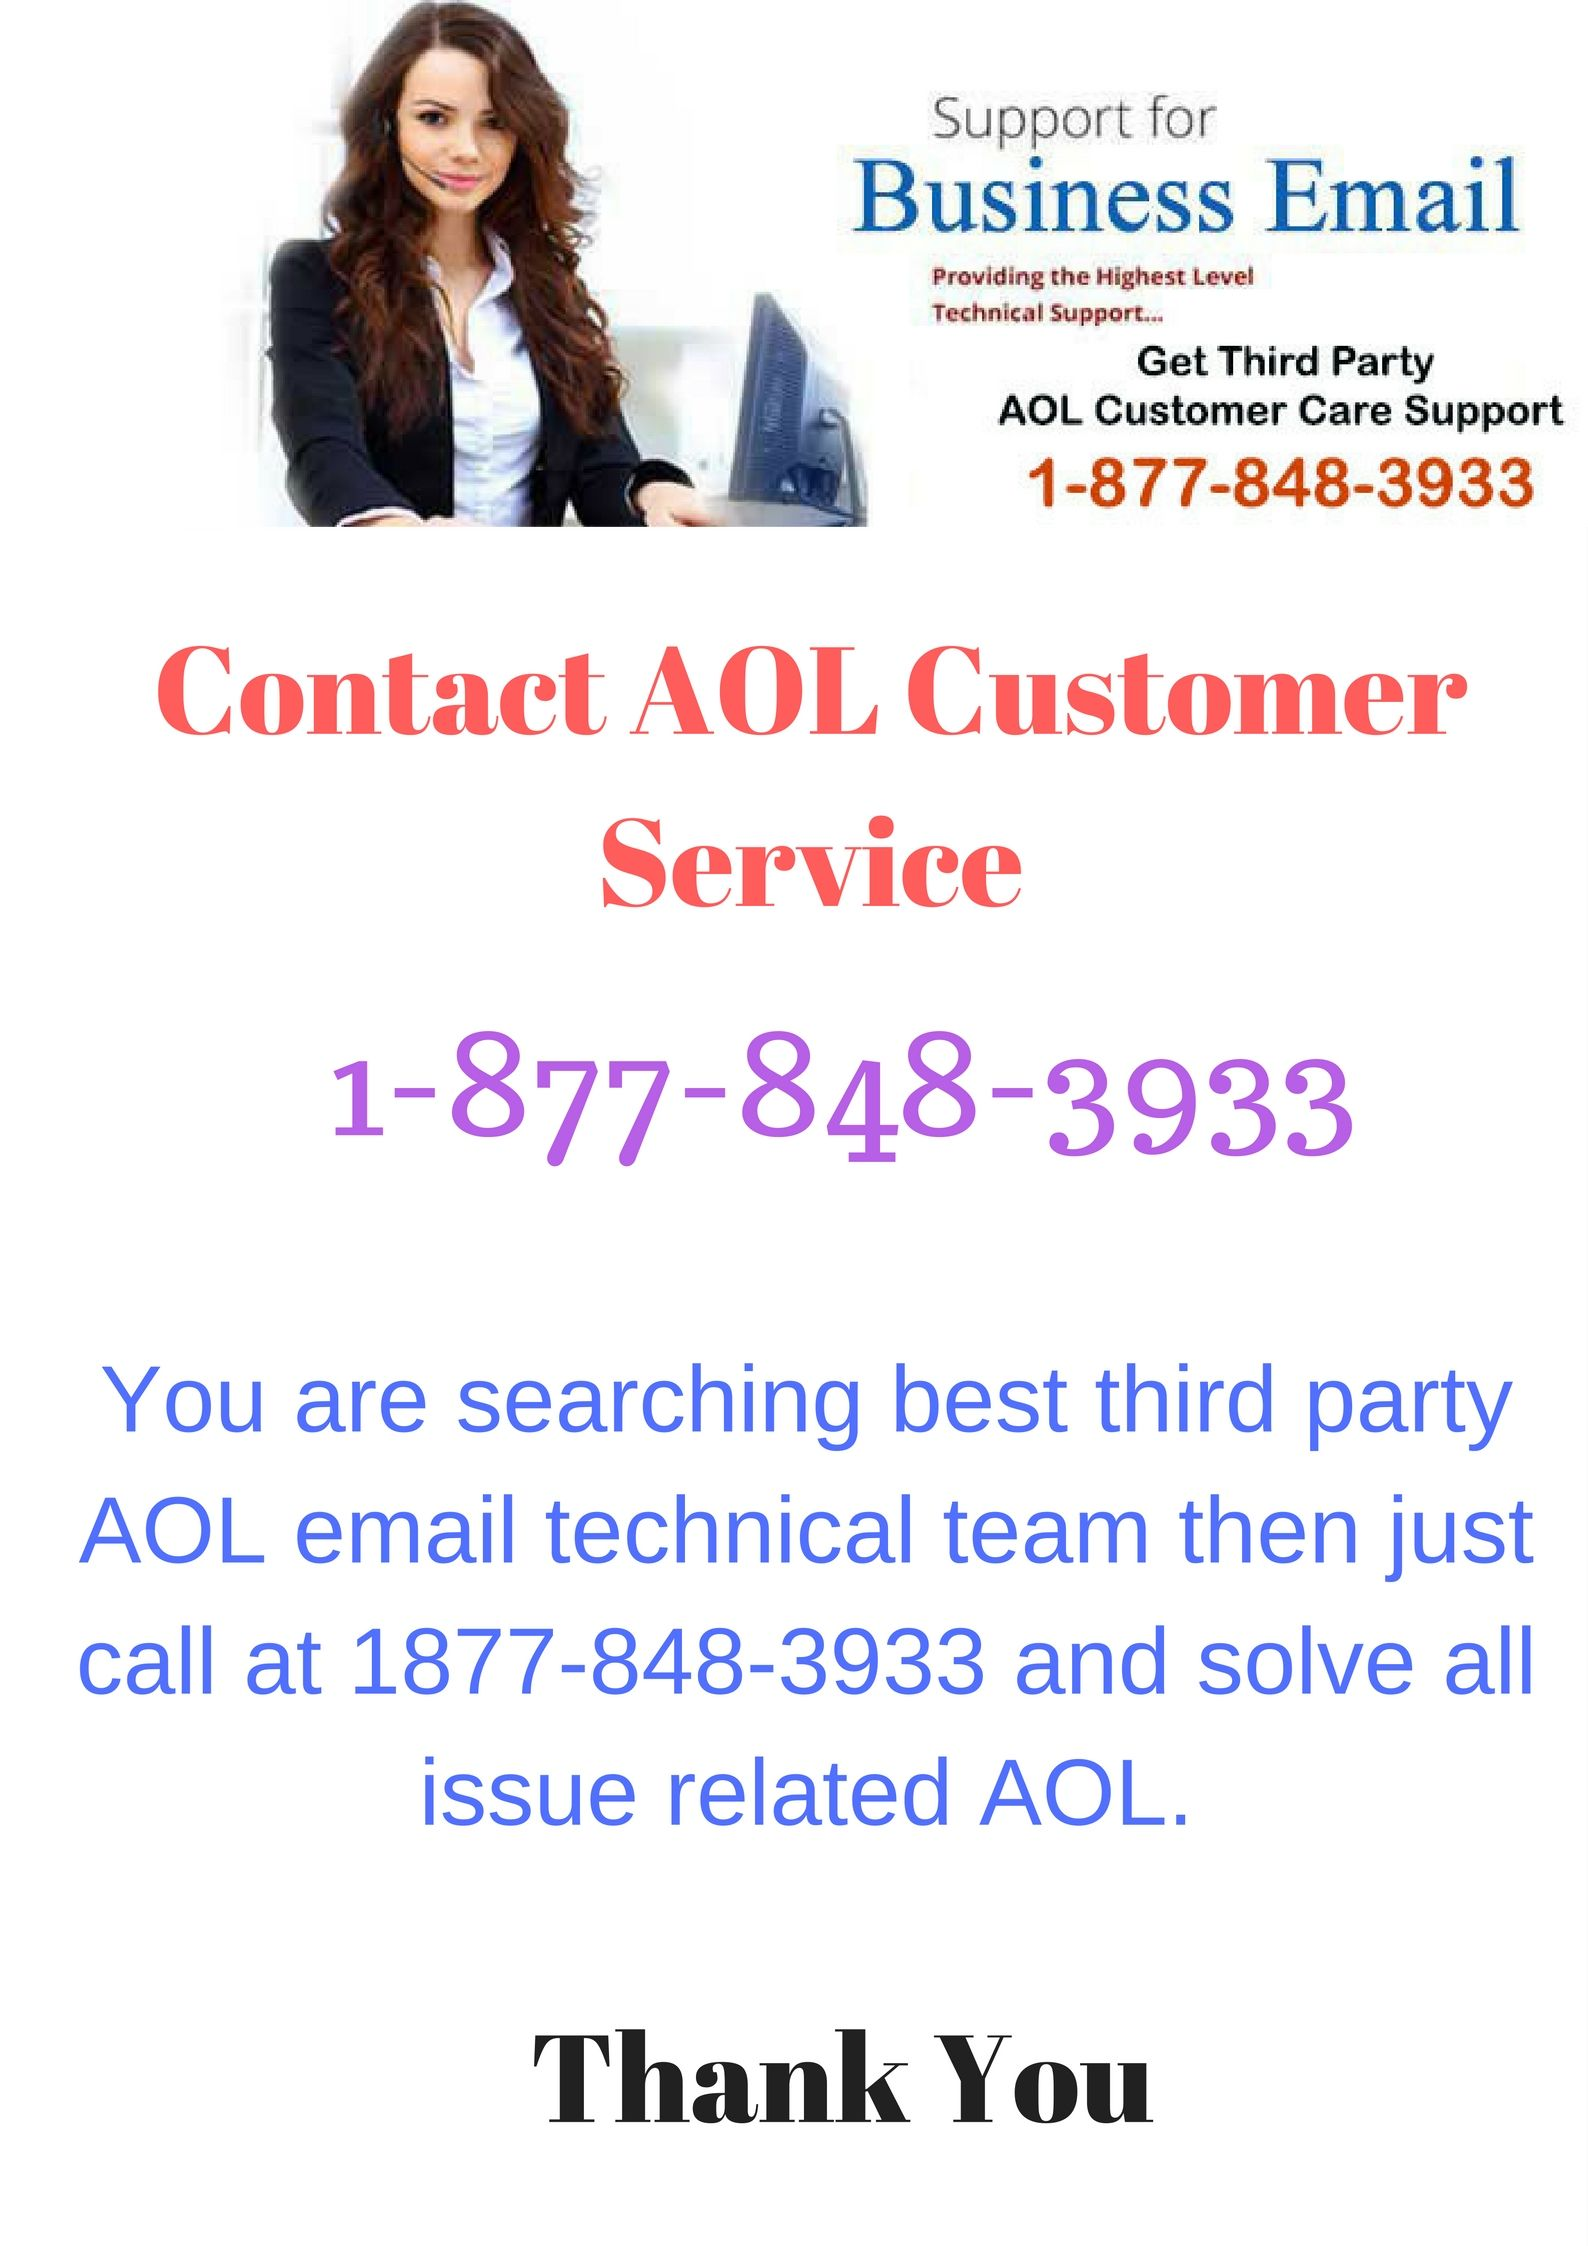 We are a third party aol technical service provider who provides